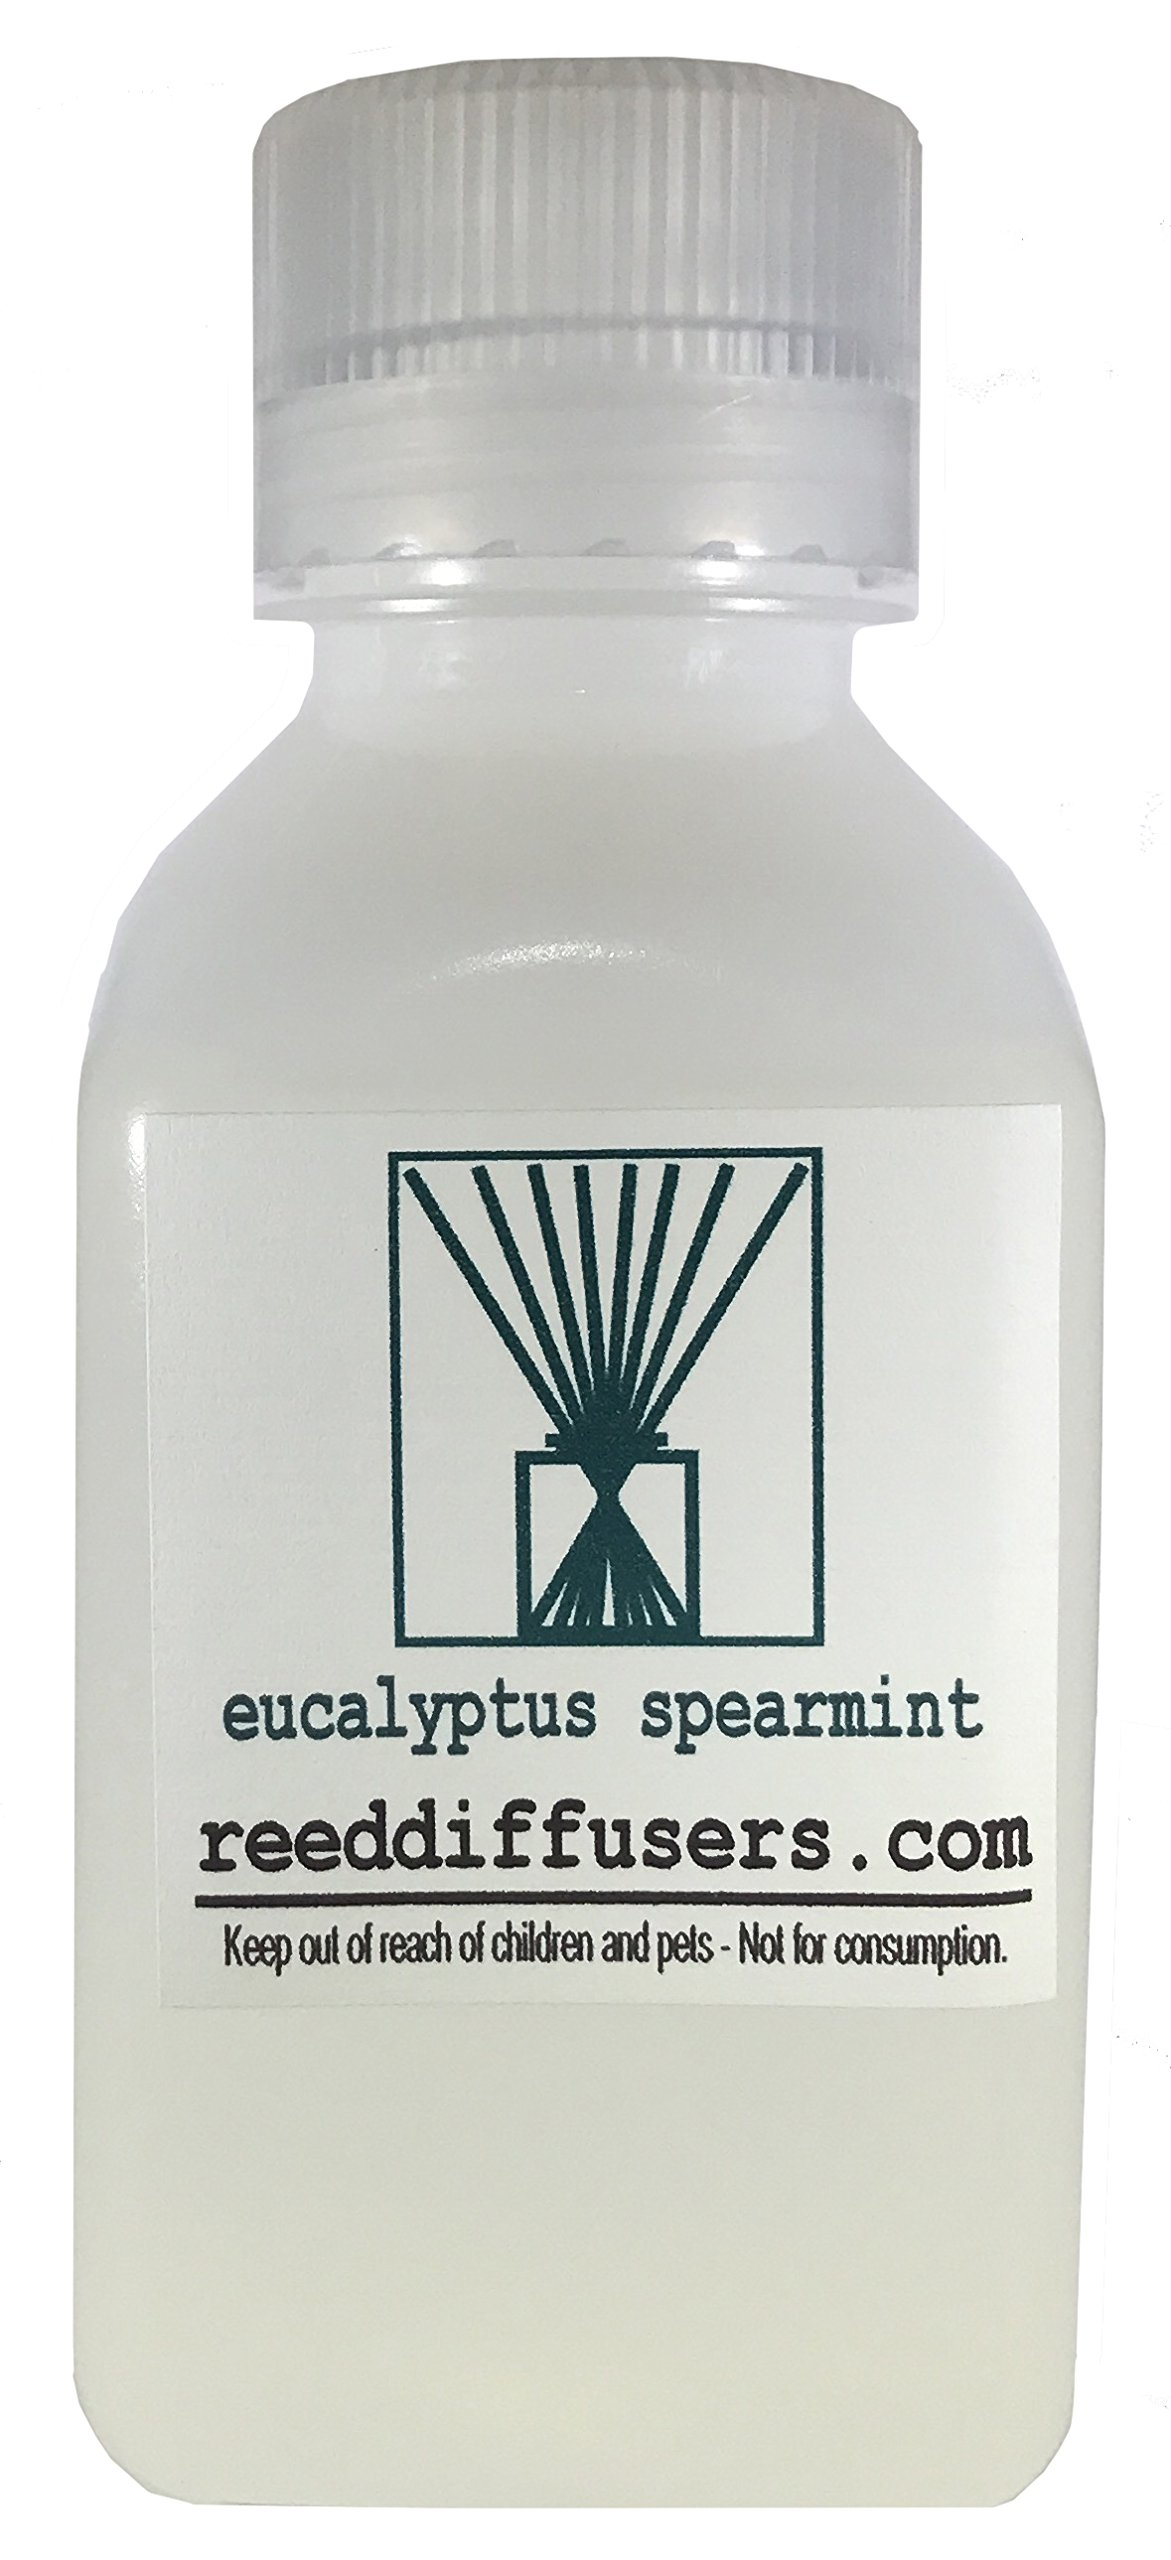 Eucalyptus Spearmint Fragrance Reed Diffuser Oil Refill - 8oz - Made in the USA by ReedDiffusers.com (Image #1)